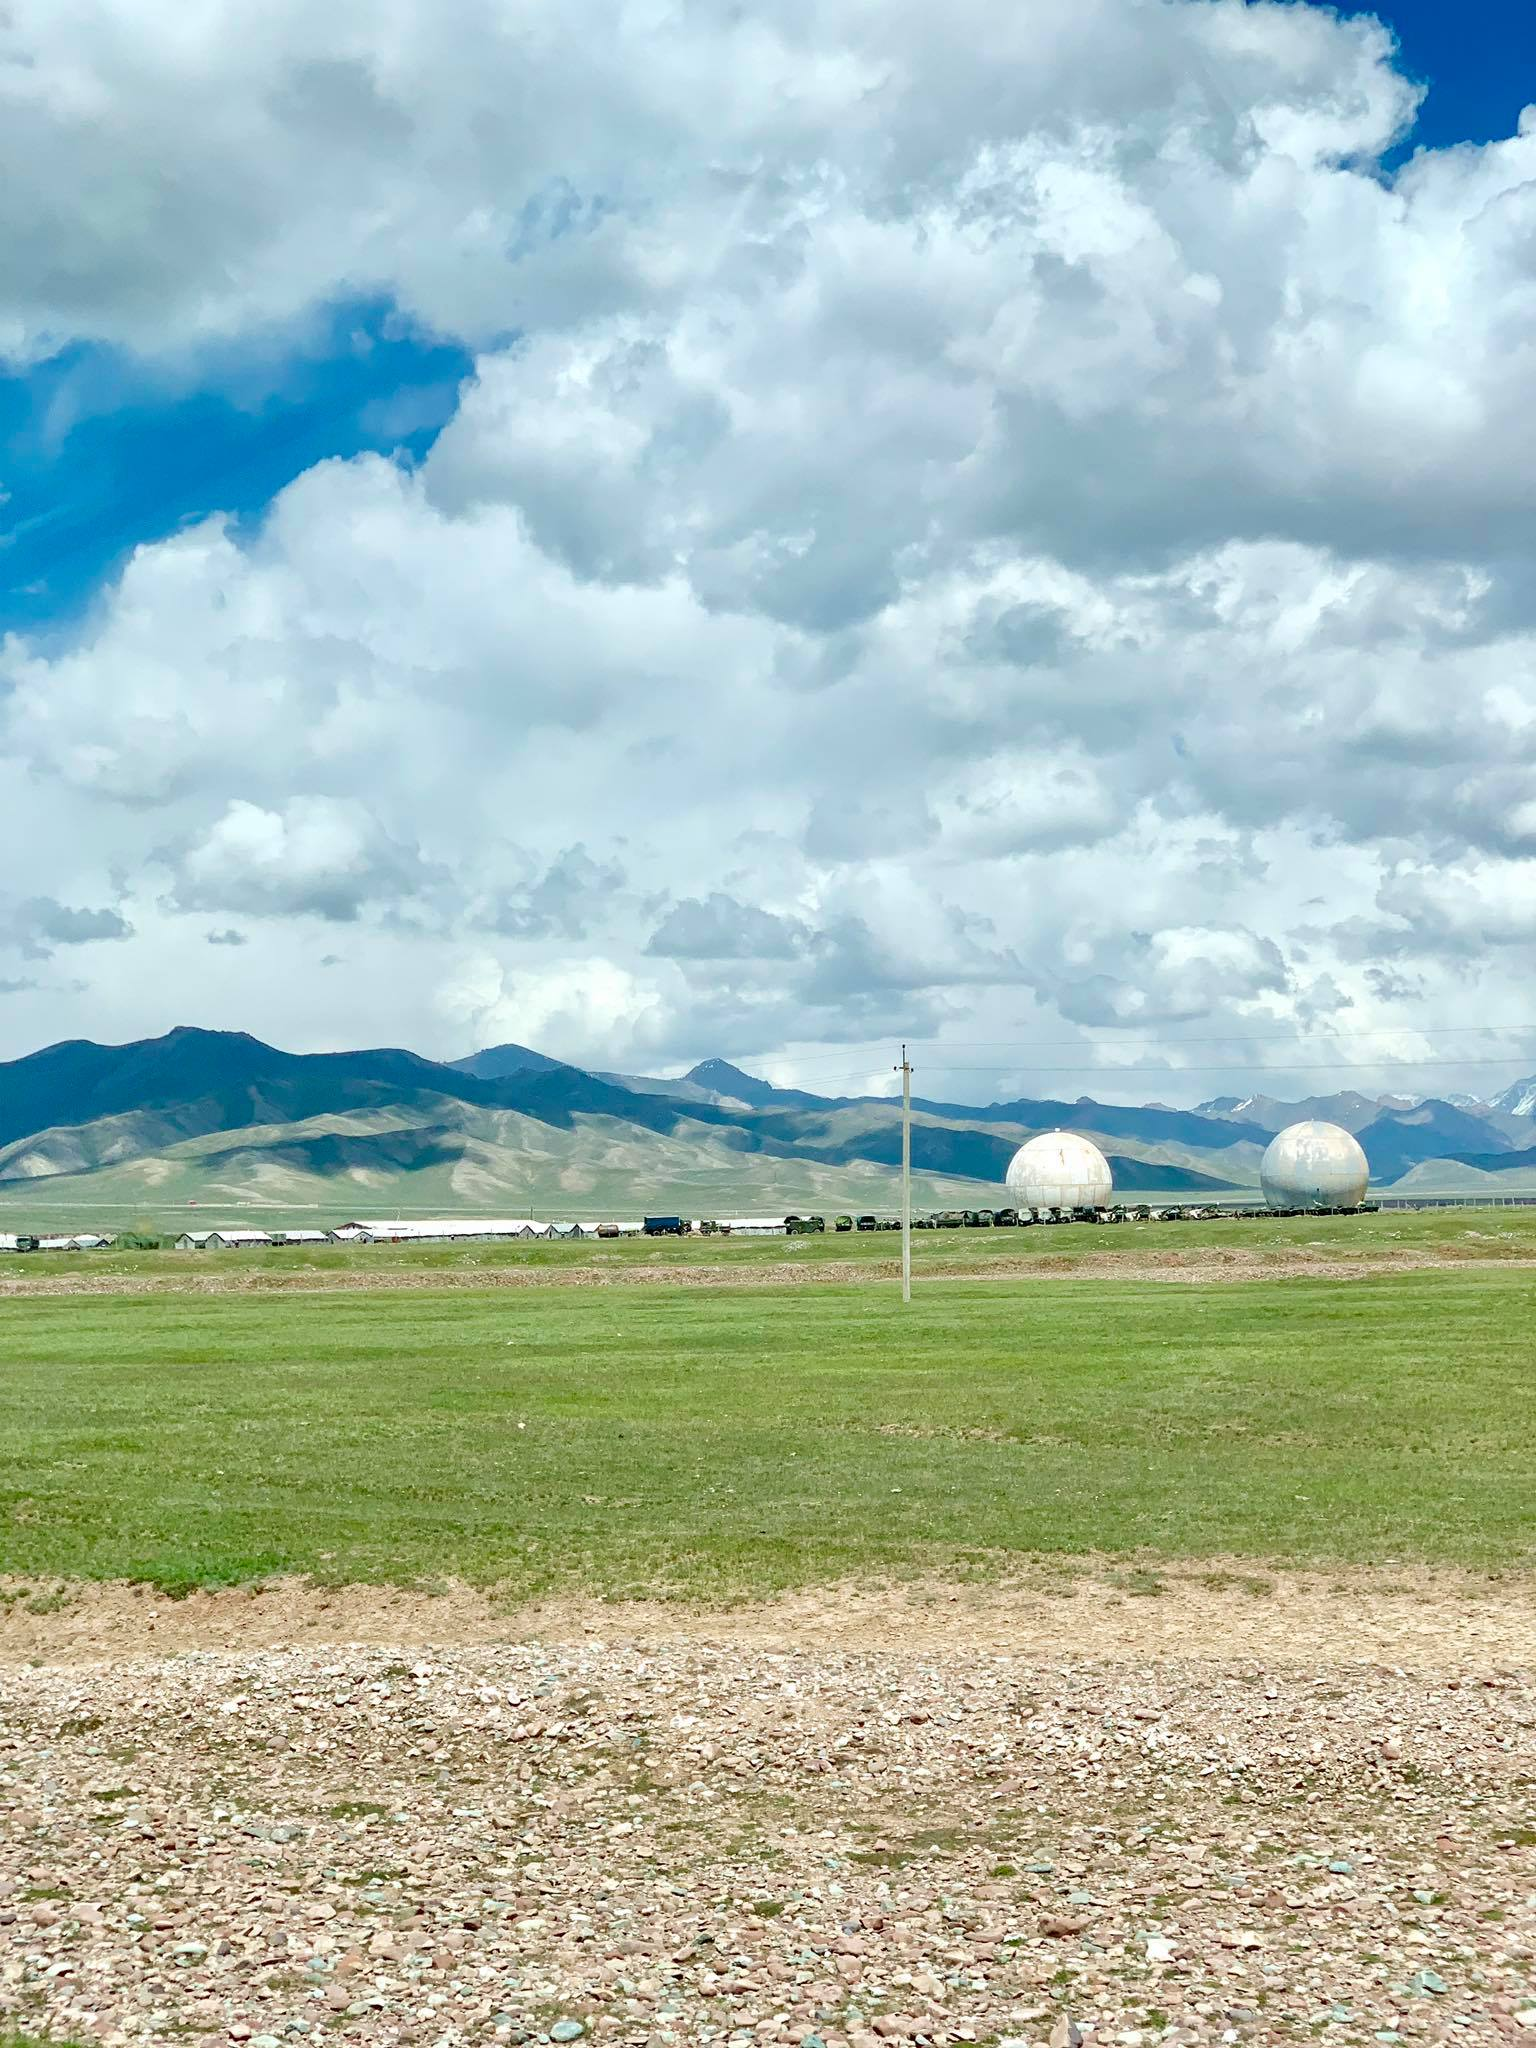 Kach Solo Travels in 2019 Hello from KYRGYZSTAN, my 128th country3.jpg